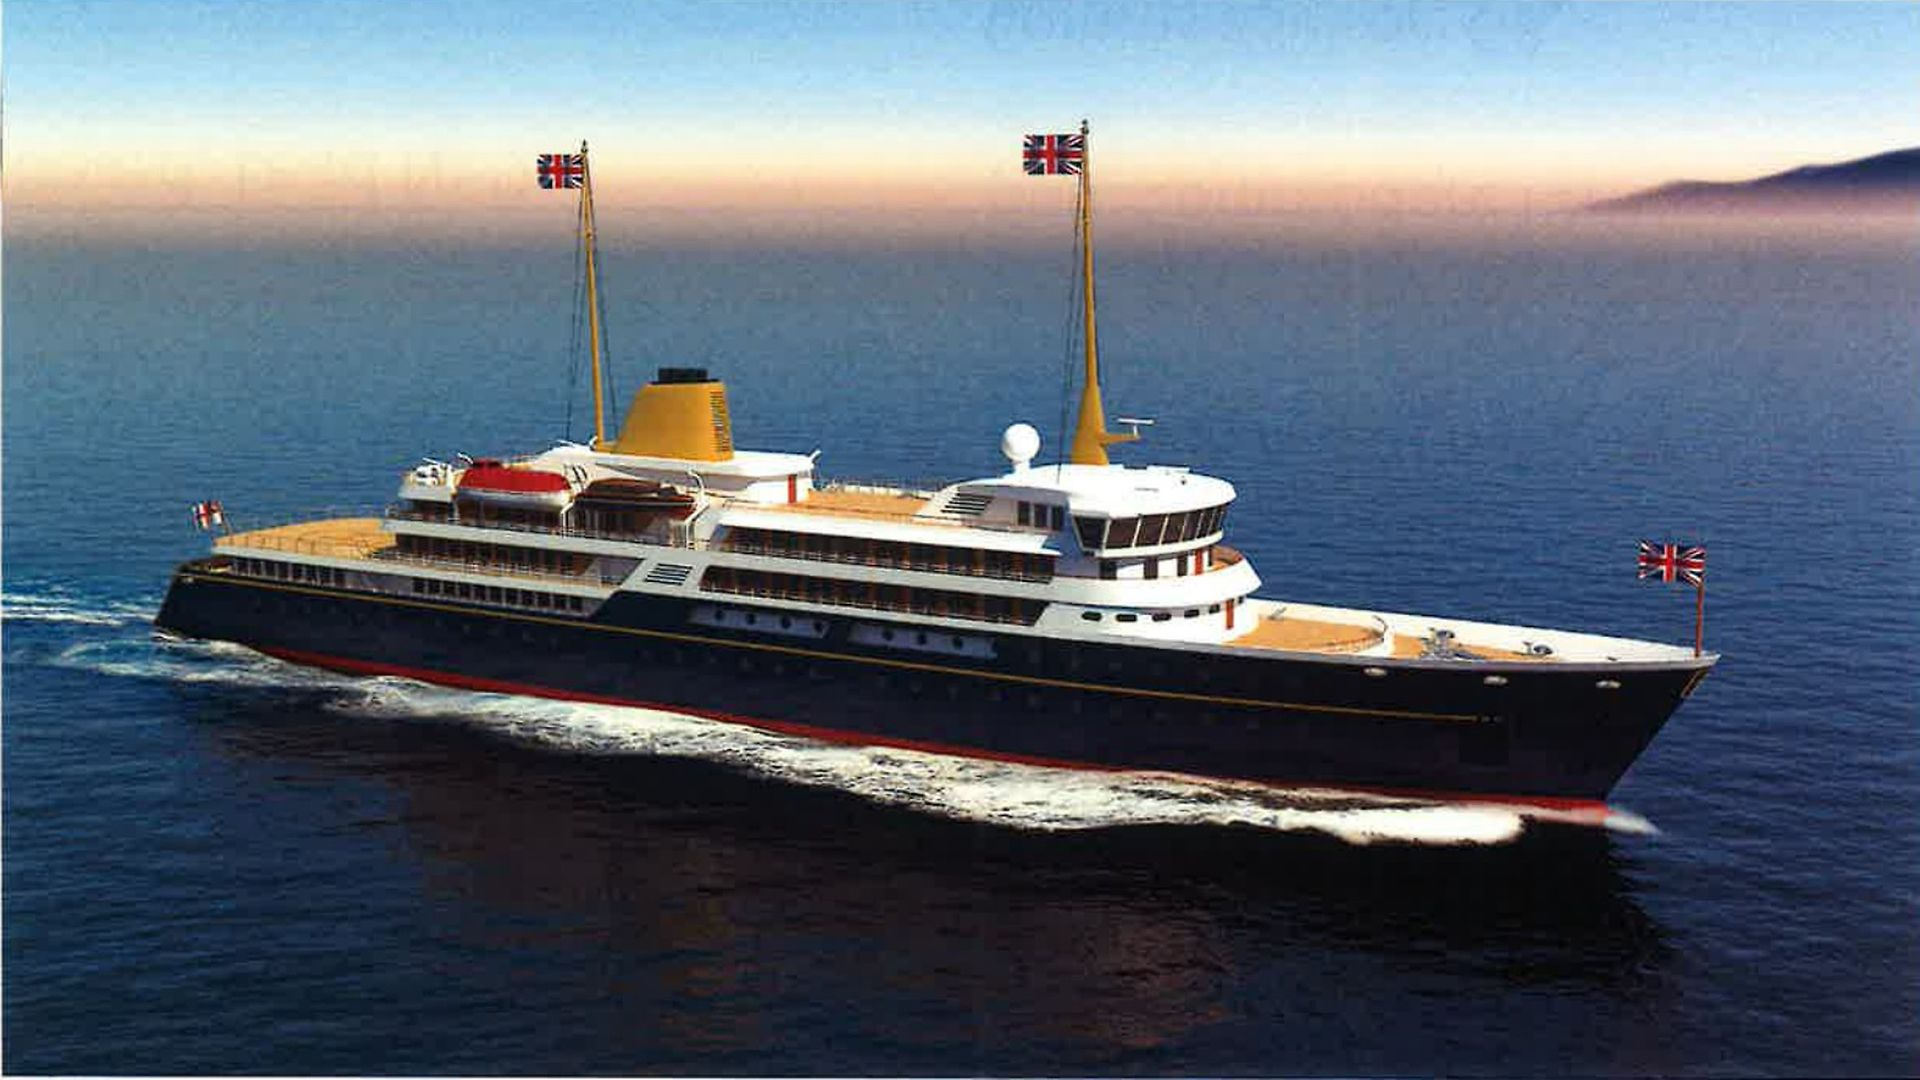 Handout image issued by 10 Downing Street showing an artist's impression of a new national flagship, the successor to the Royal Yacht Britannia, which Prime Minister Boris Johnson has said will promote British trade and industry around the world. Issue date: Sunday May 30, 2021. - Credit: PA